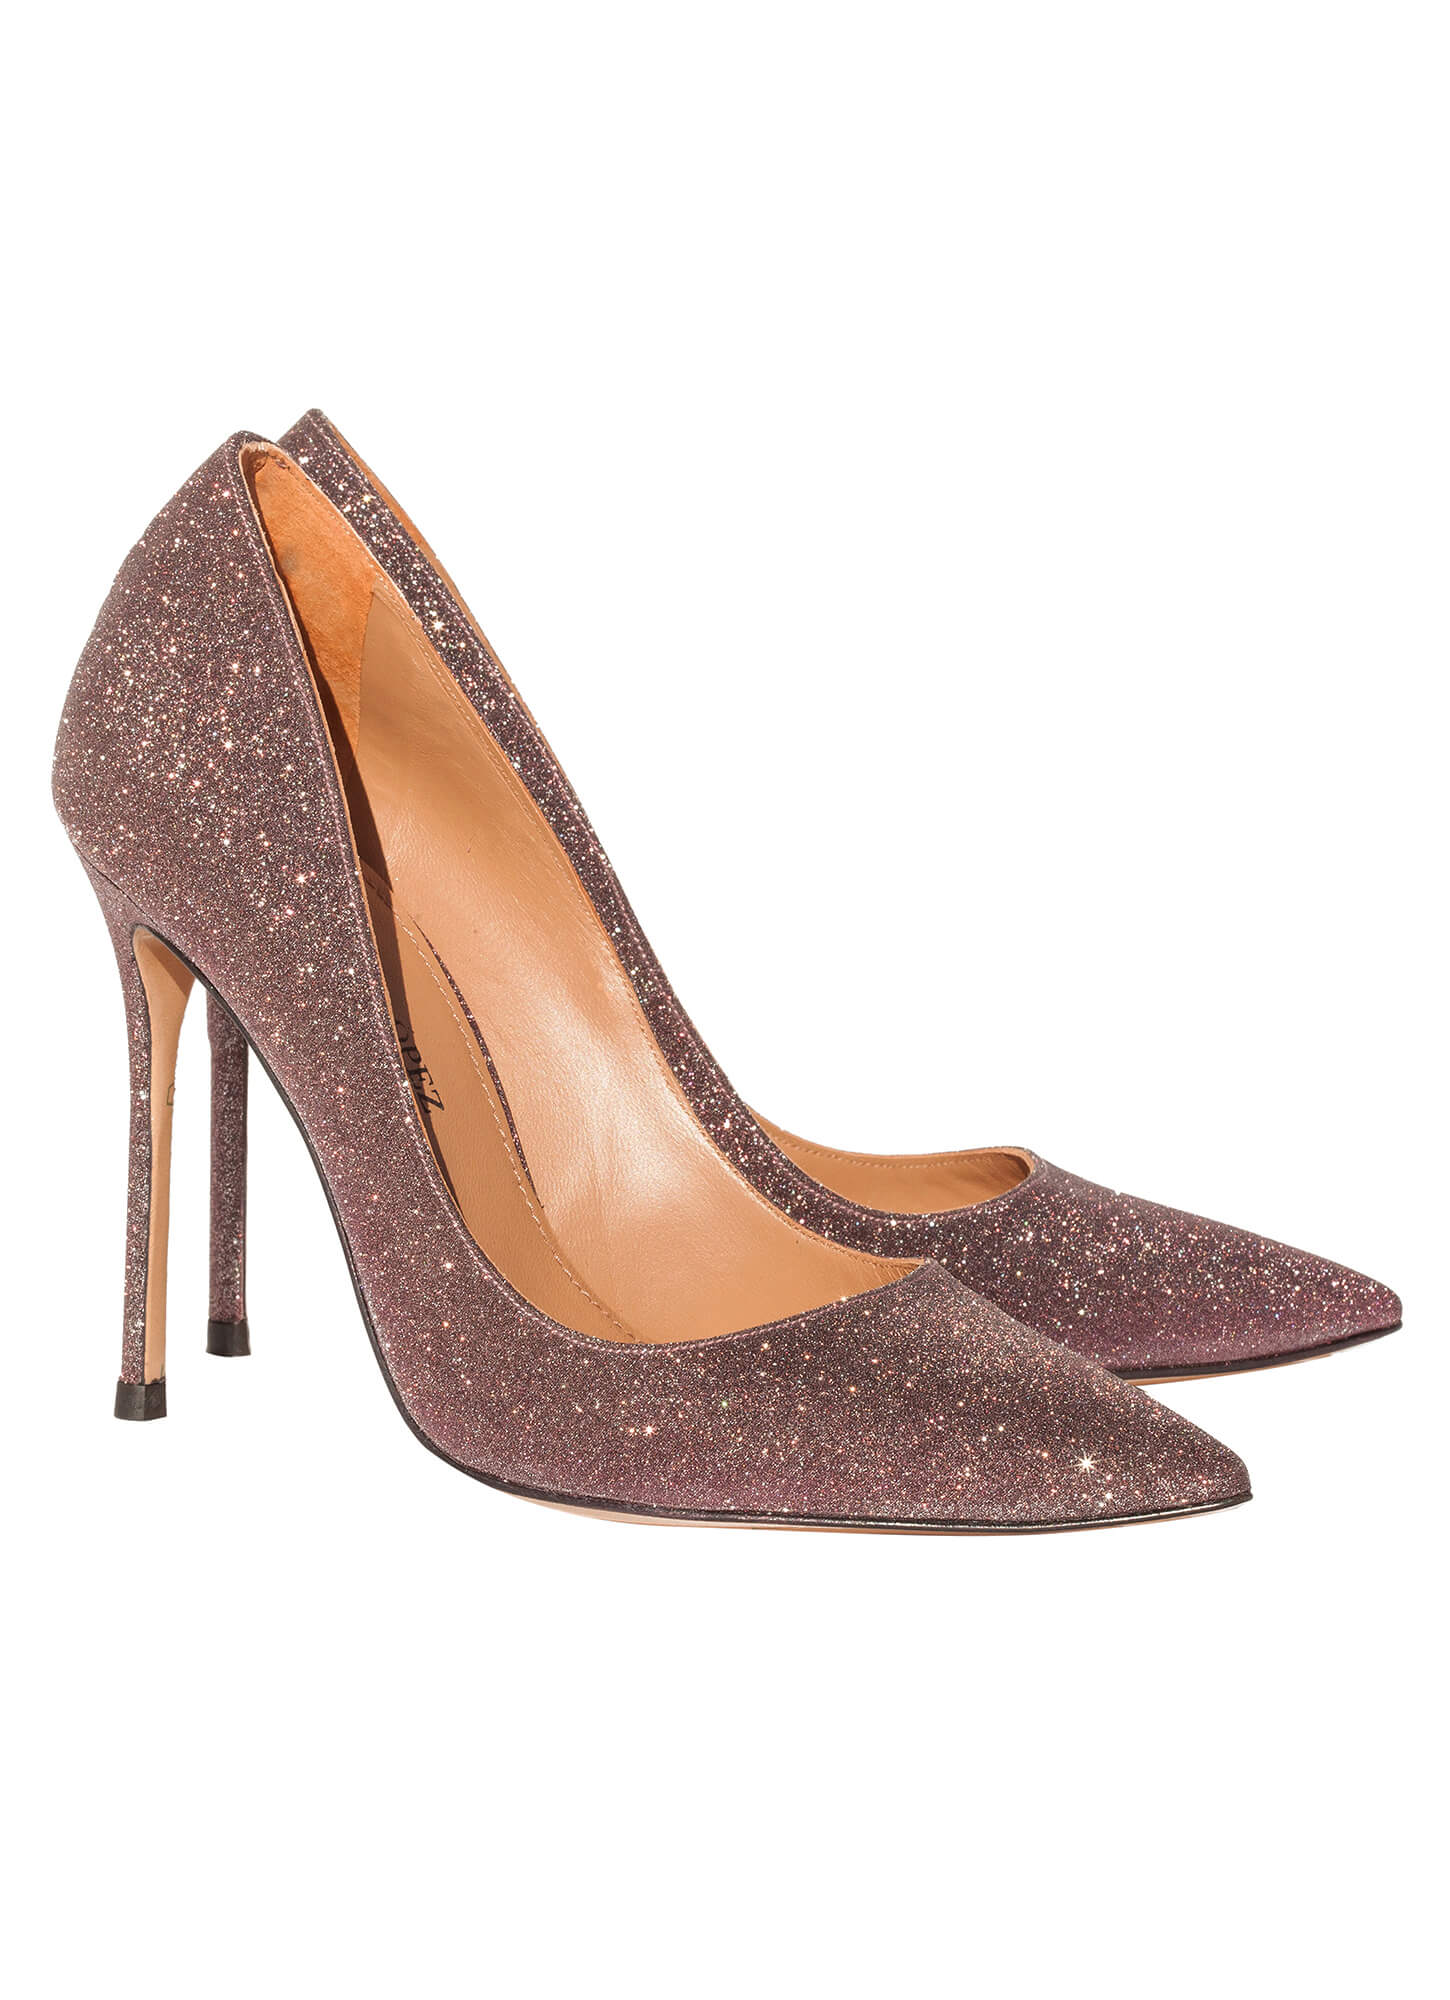 high heel pumps in wine glitter online shoe store pura. Black Bedroom Furniture Sets. Home Design Ideas